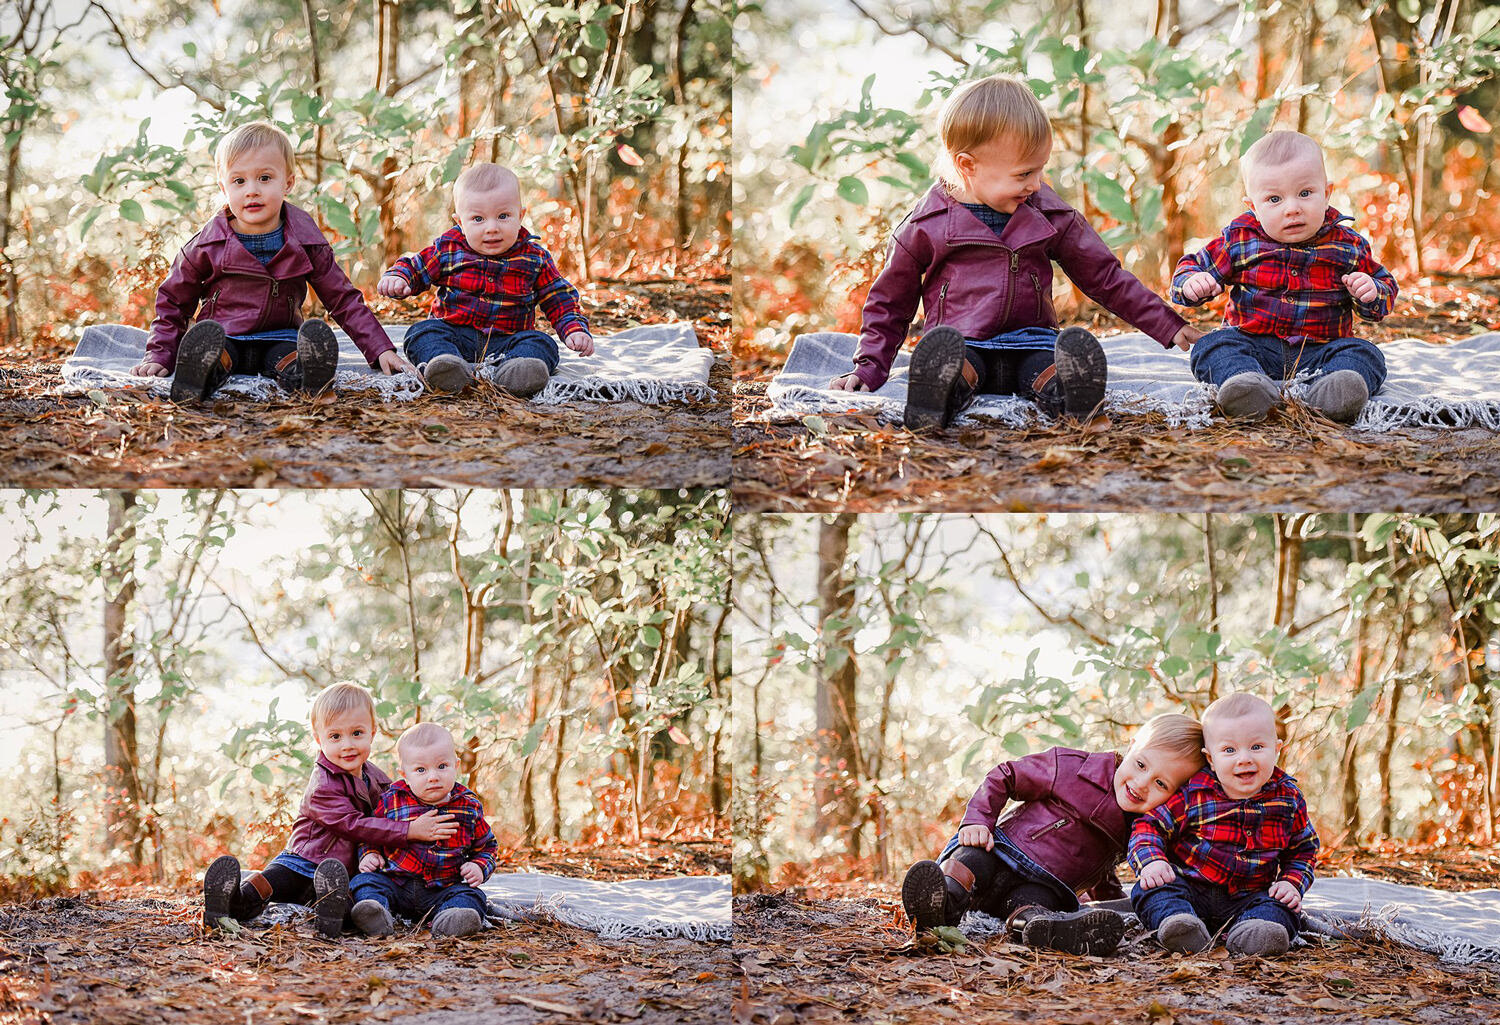 fall-photos-of-kids-at-park-melissa-bliss-photography-va-beach.jpg